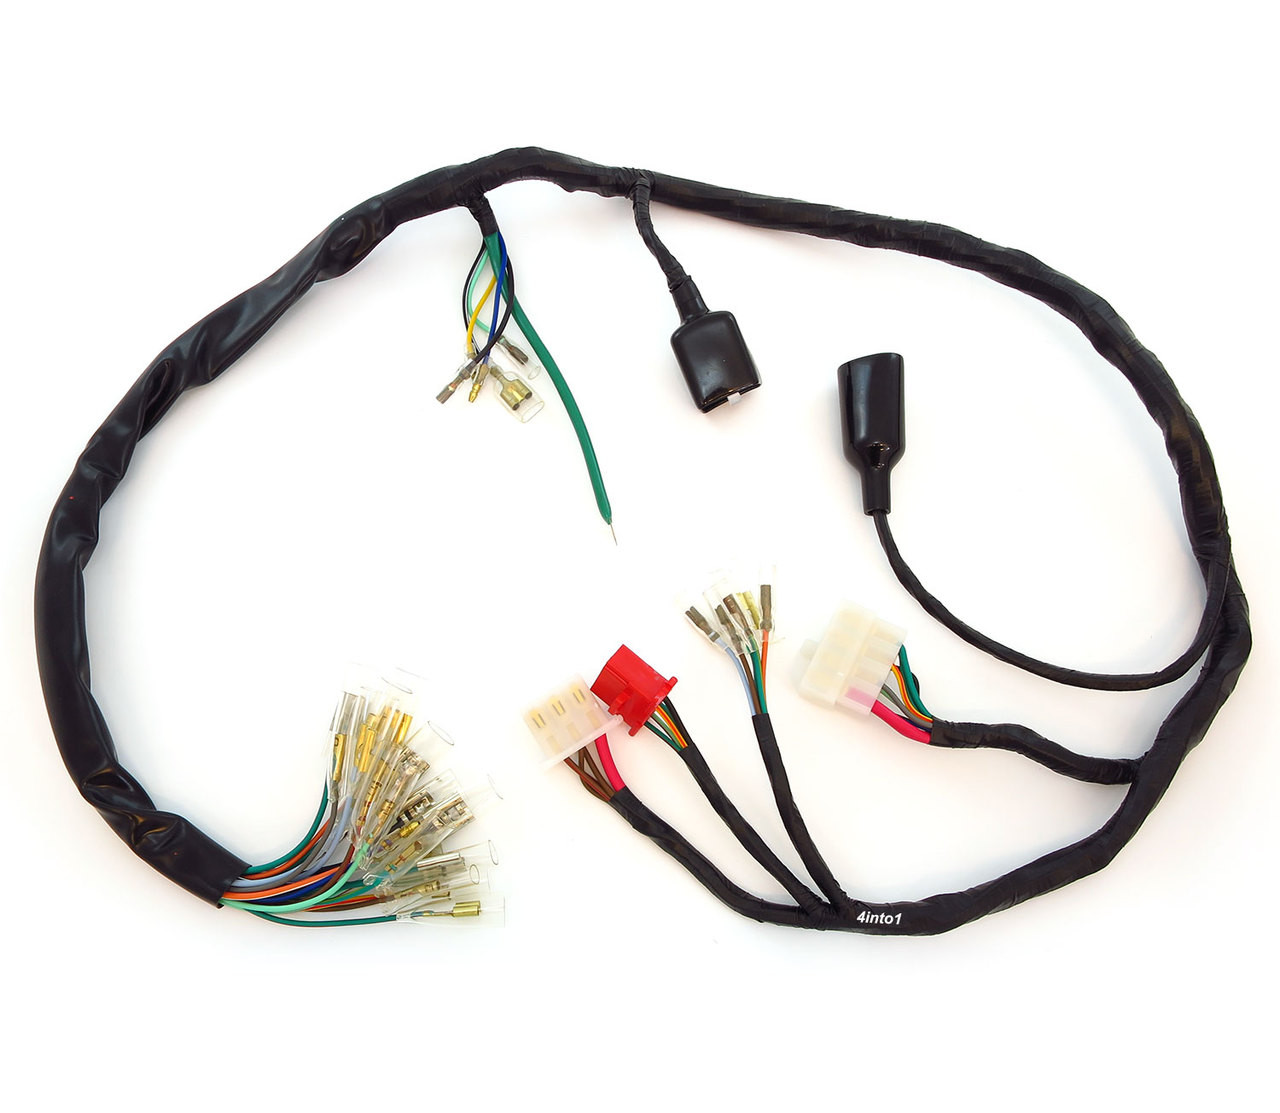 medium resolution of main wiring harness 32100 374 000 honda cb550k 1974 1975 image 1